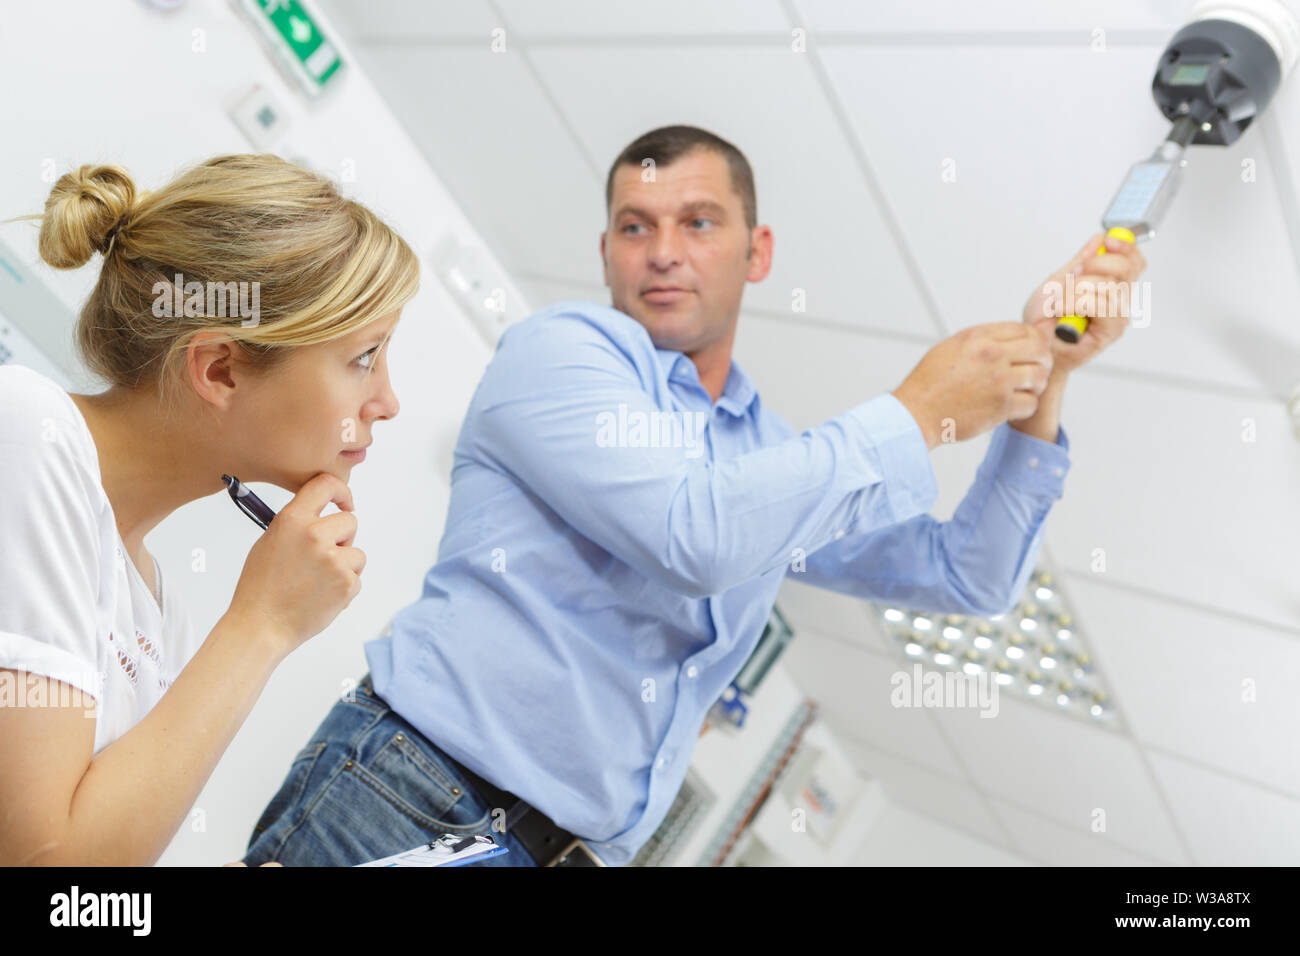 man testing a ceiling mounted detector - Stock Image